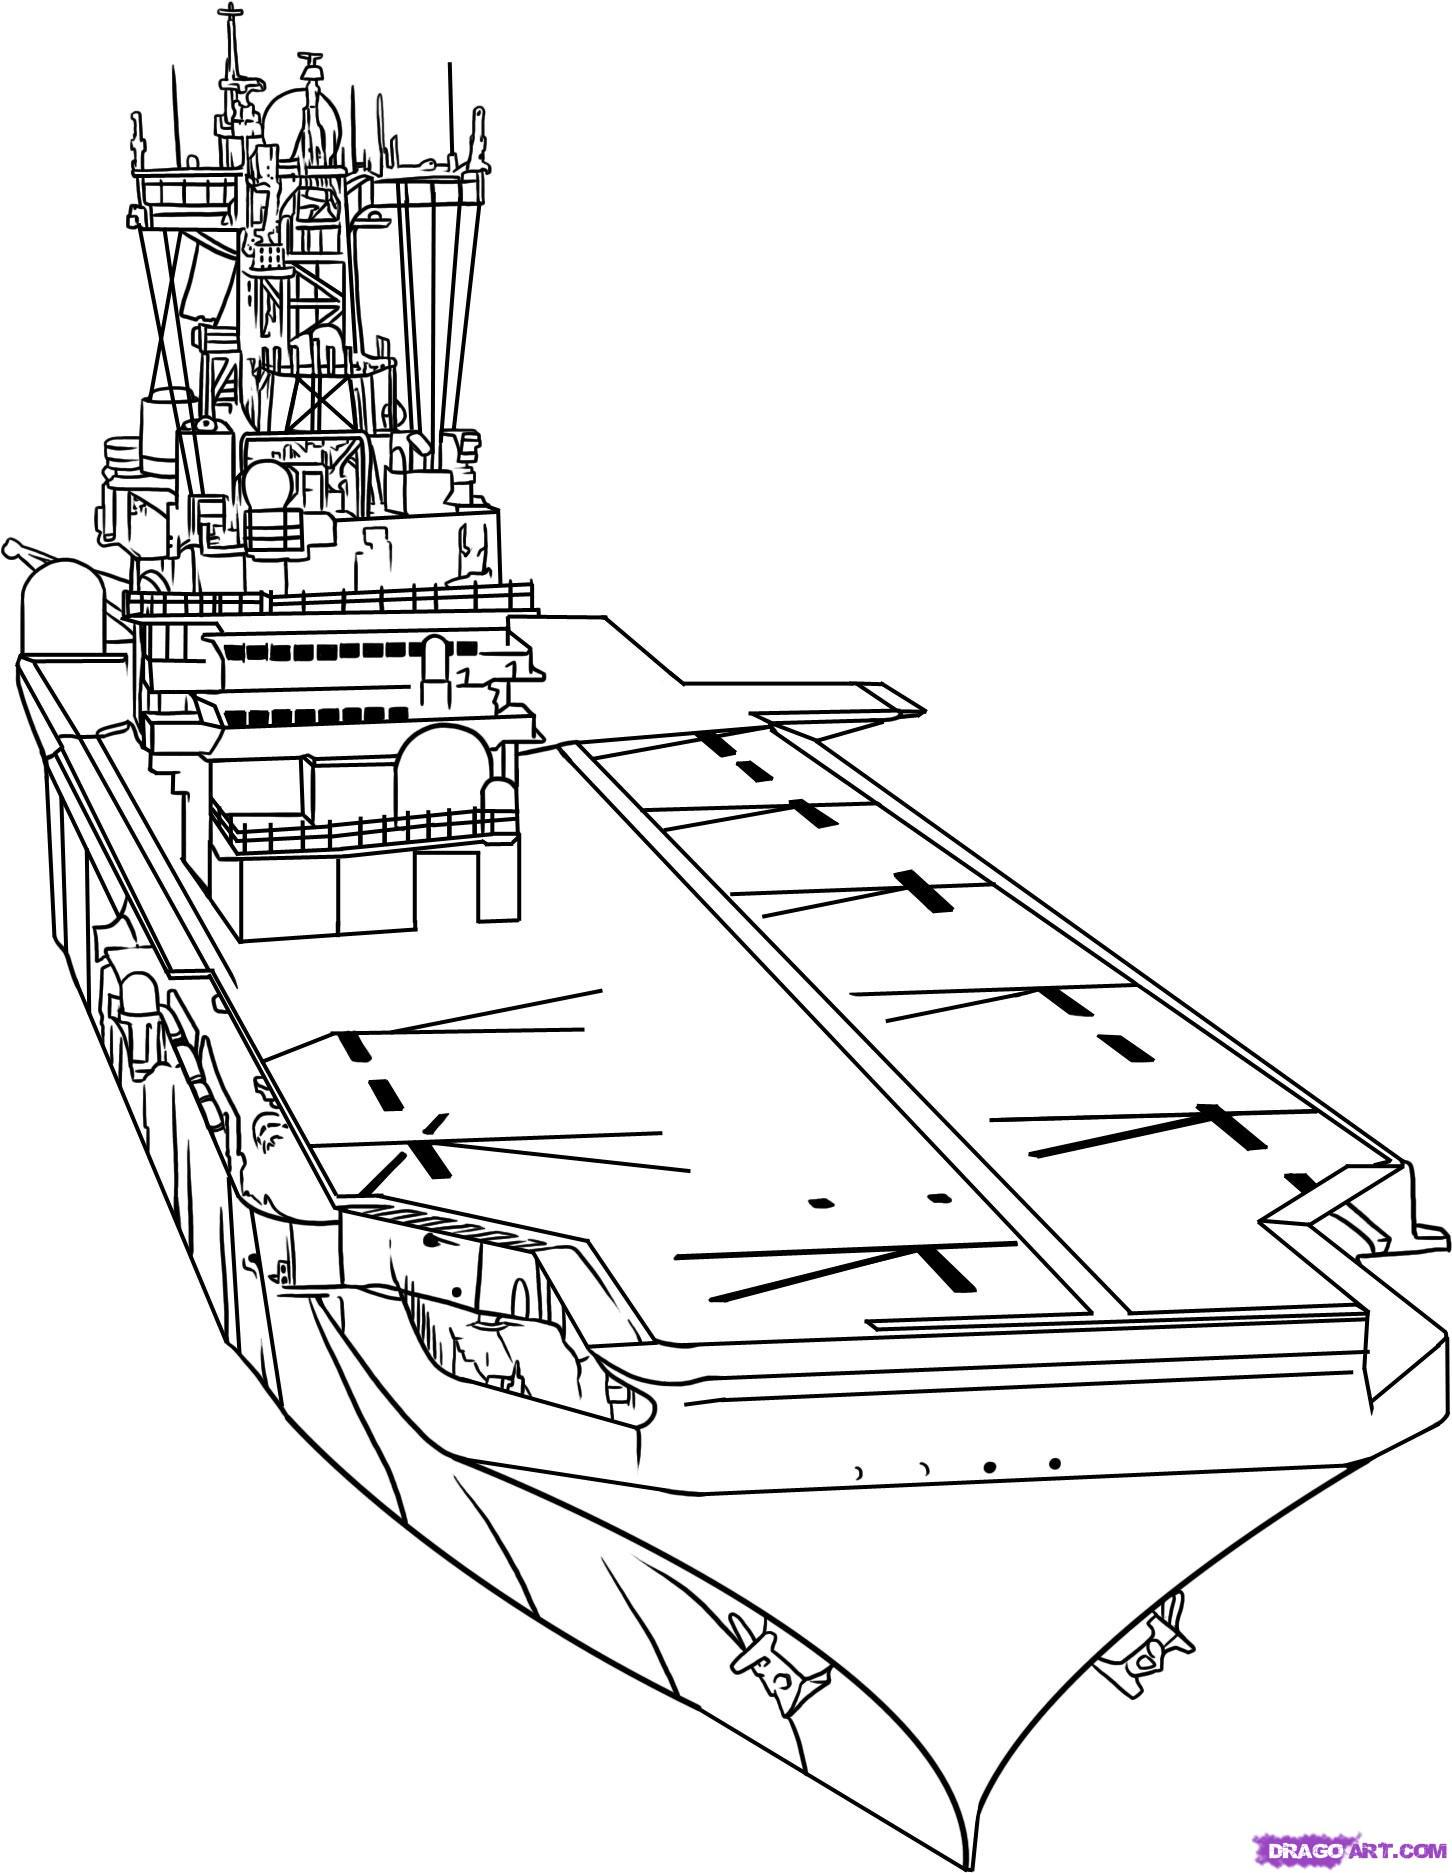 army ship coloring pages armed forces day coloring pages us navy ships coloring army pages ship coloring